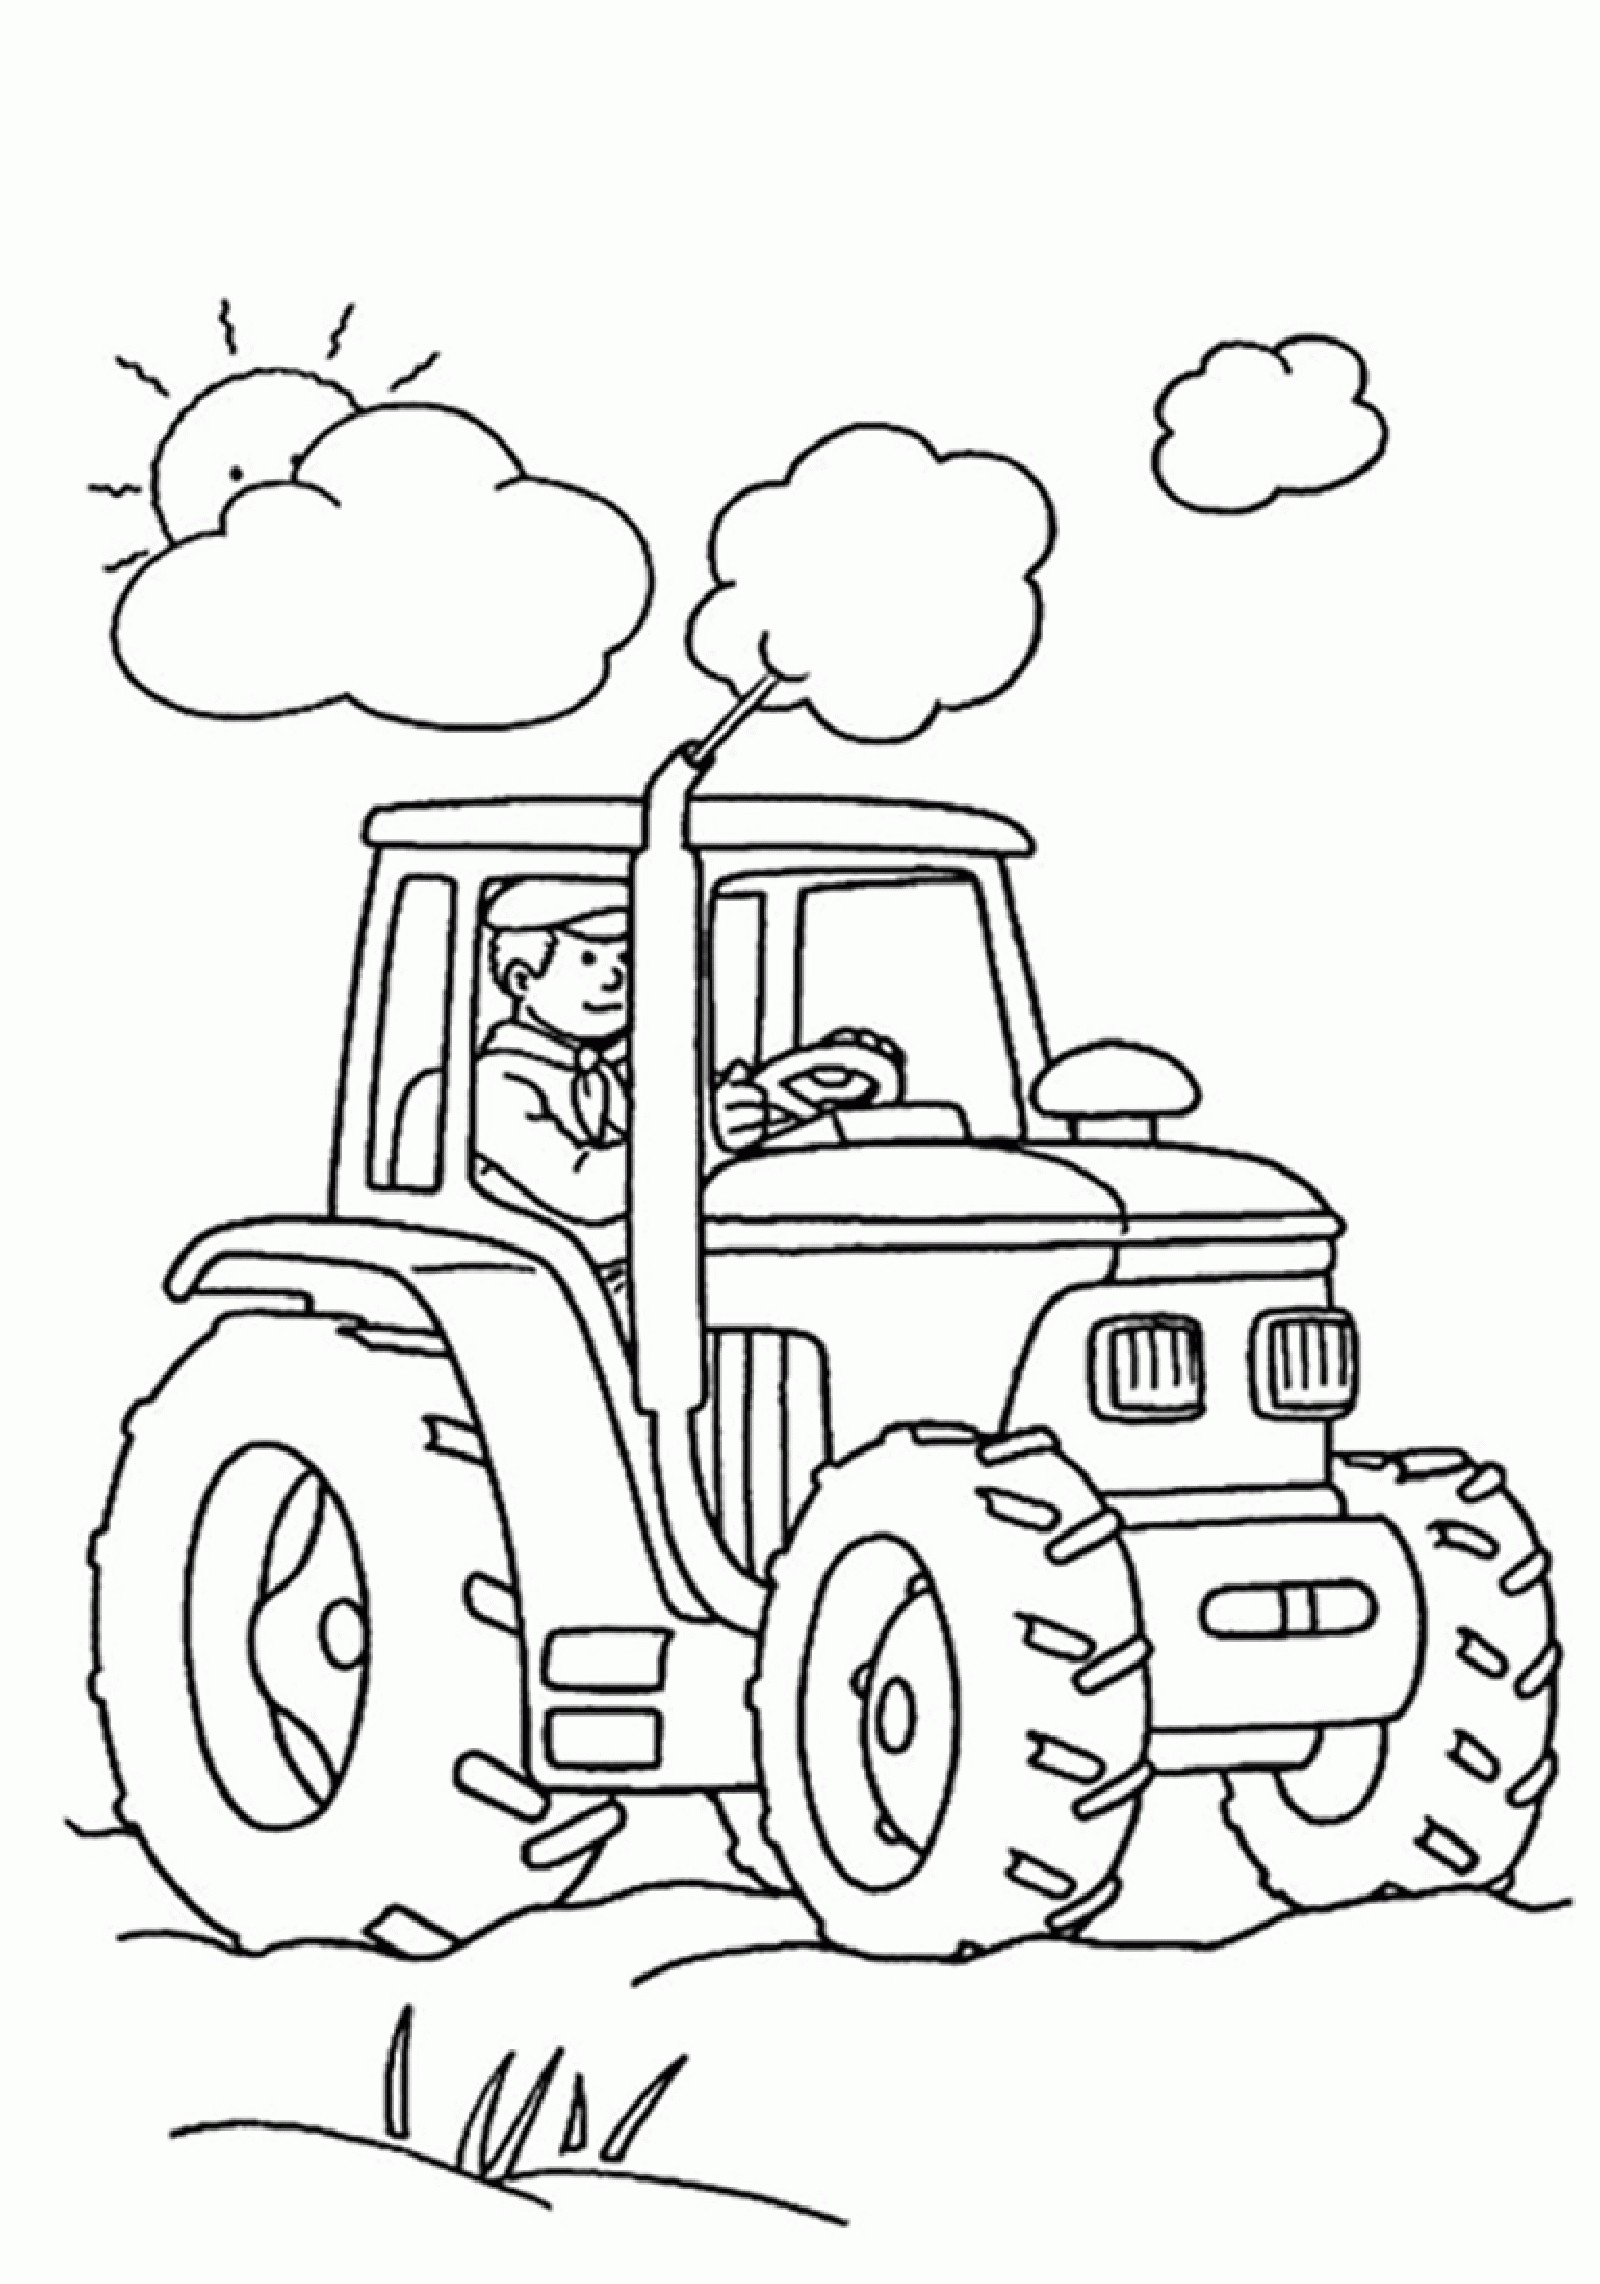 John Deere Ausmalbilder Das Beste Von Free Printable Tractor Coloring Pages for Kids Stock